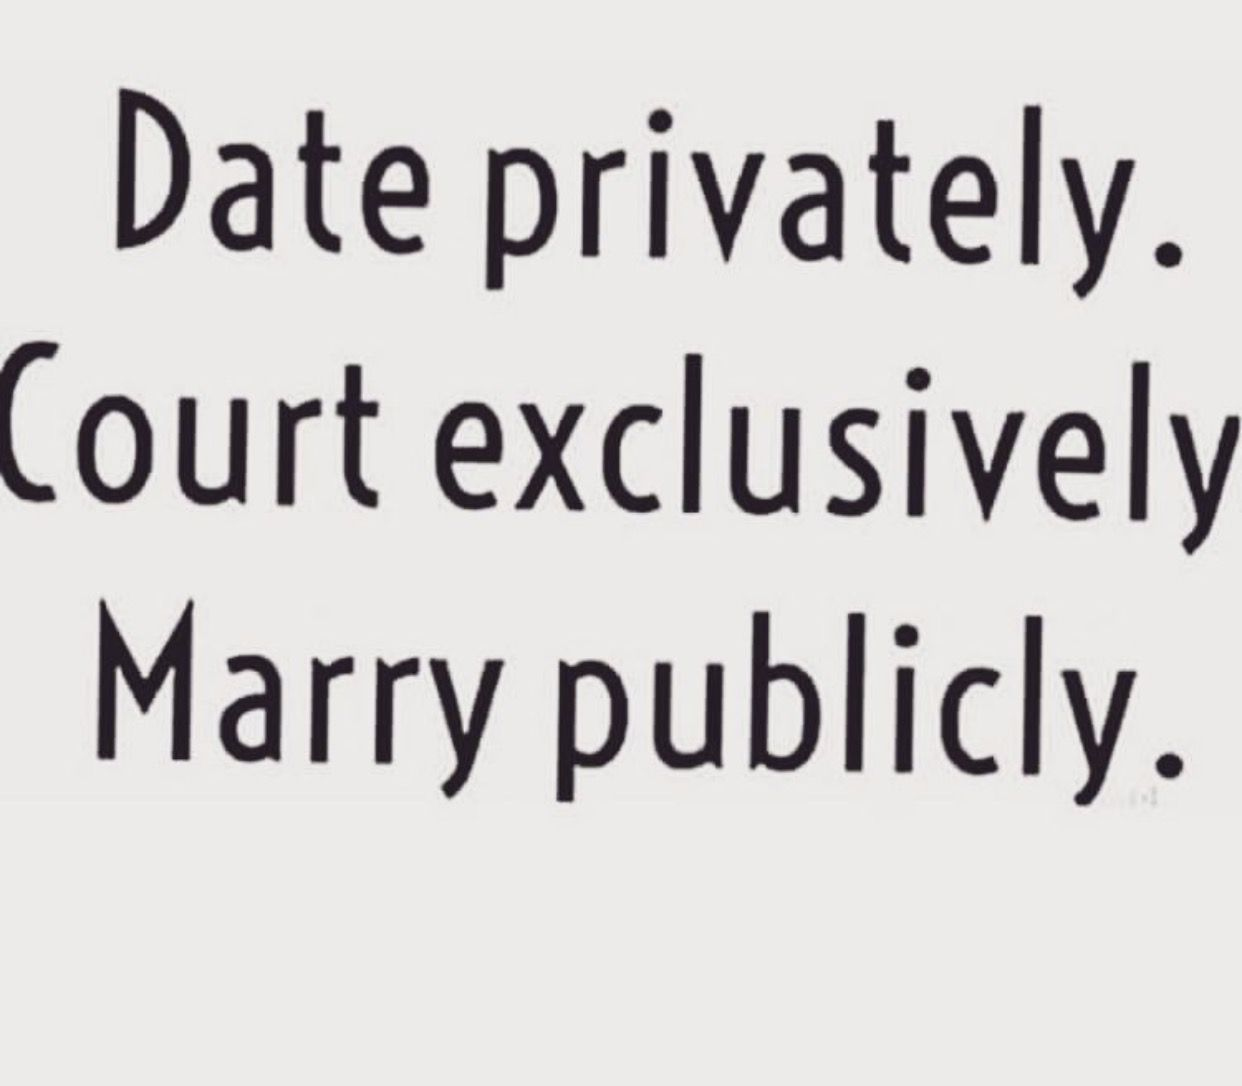 quotes about dating privately